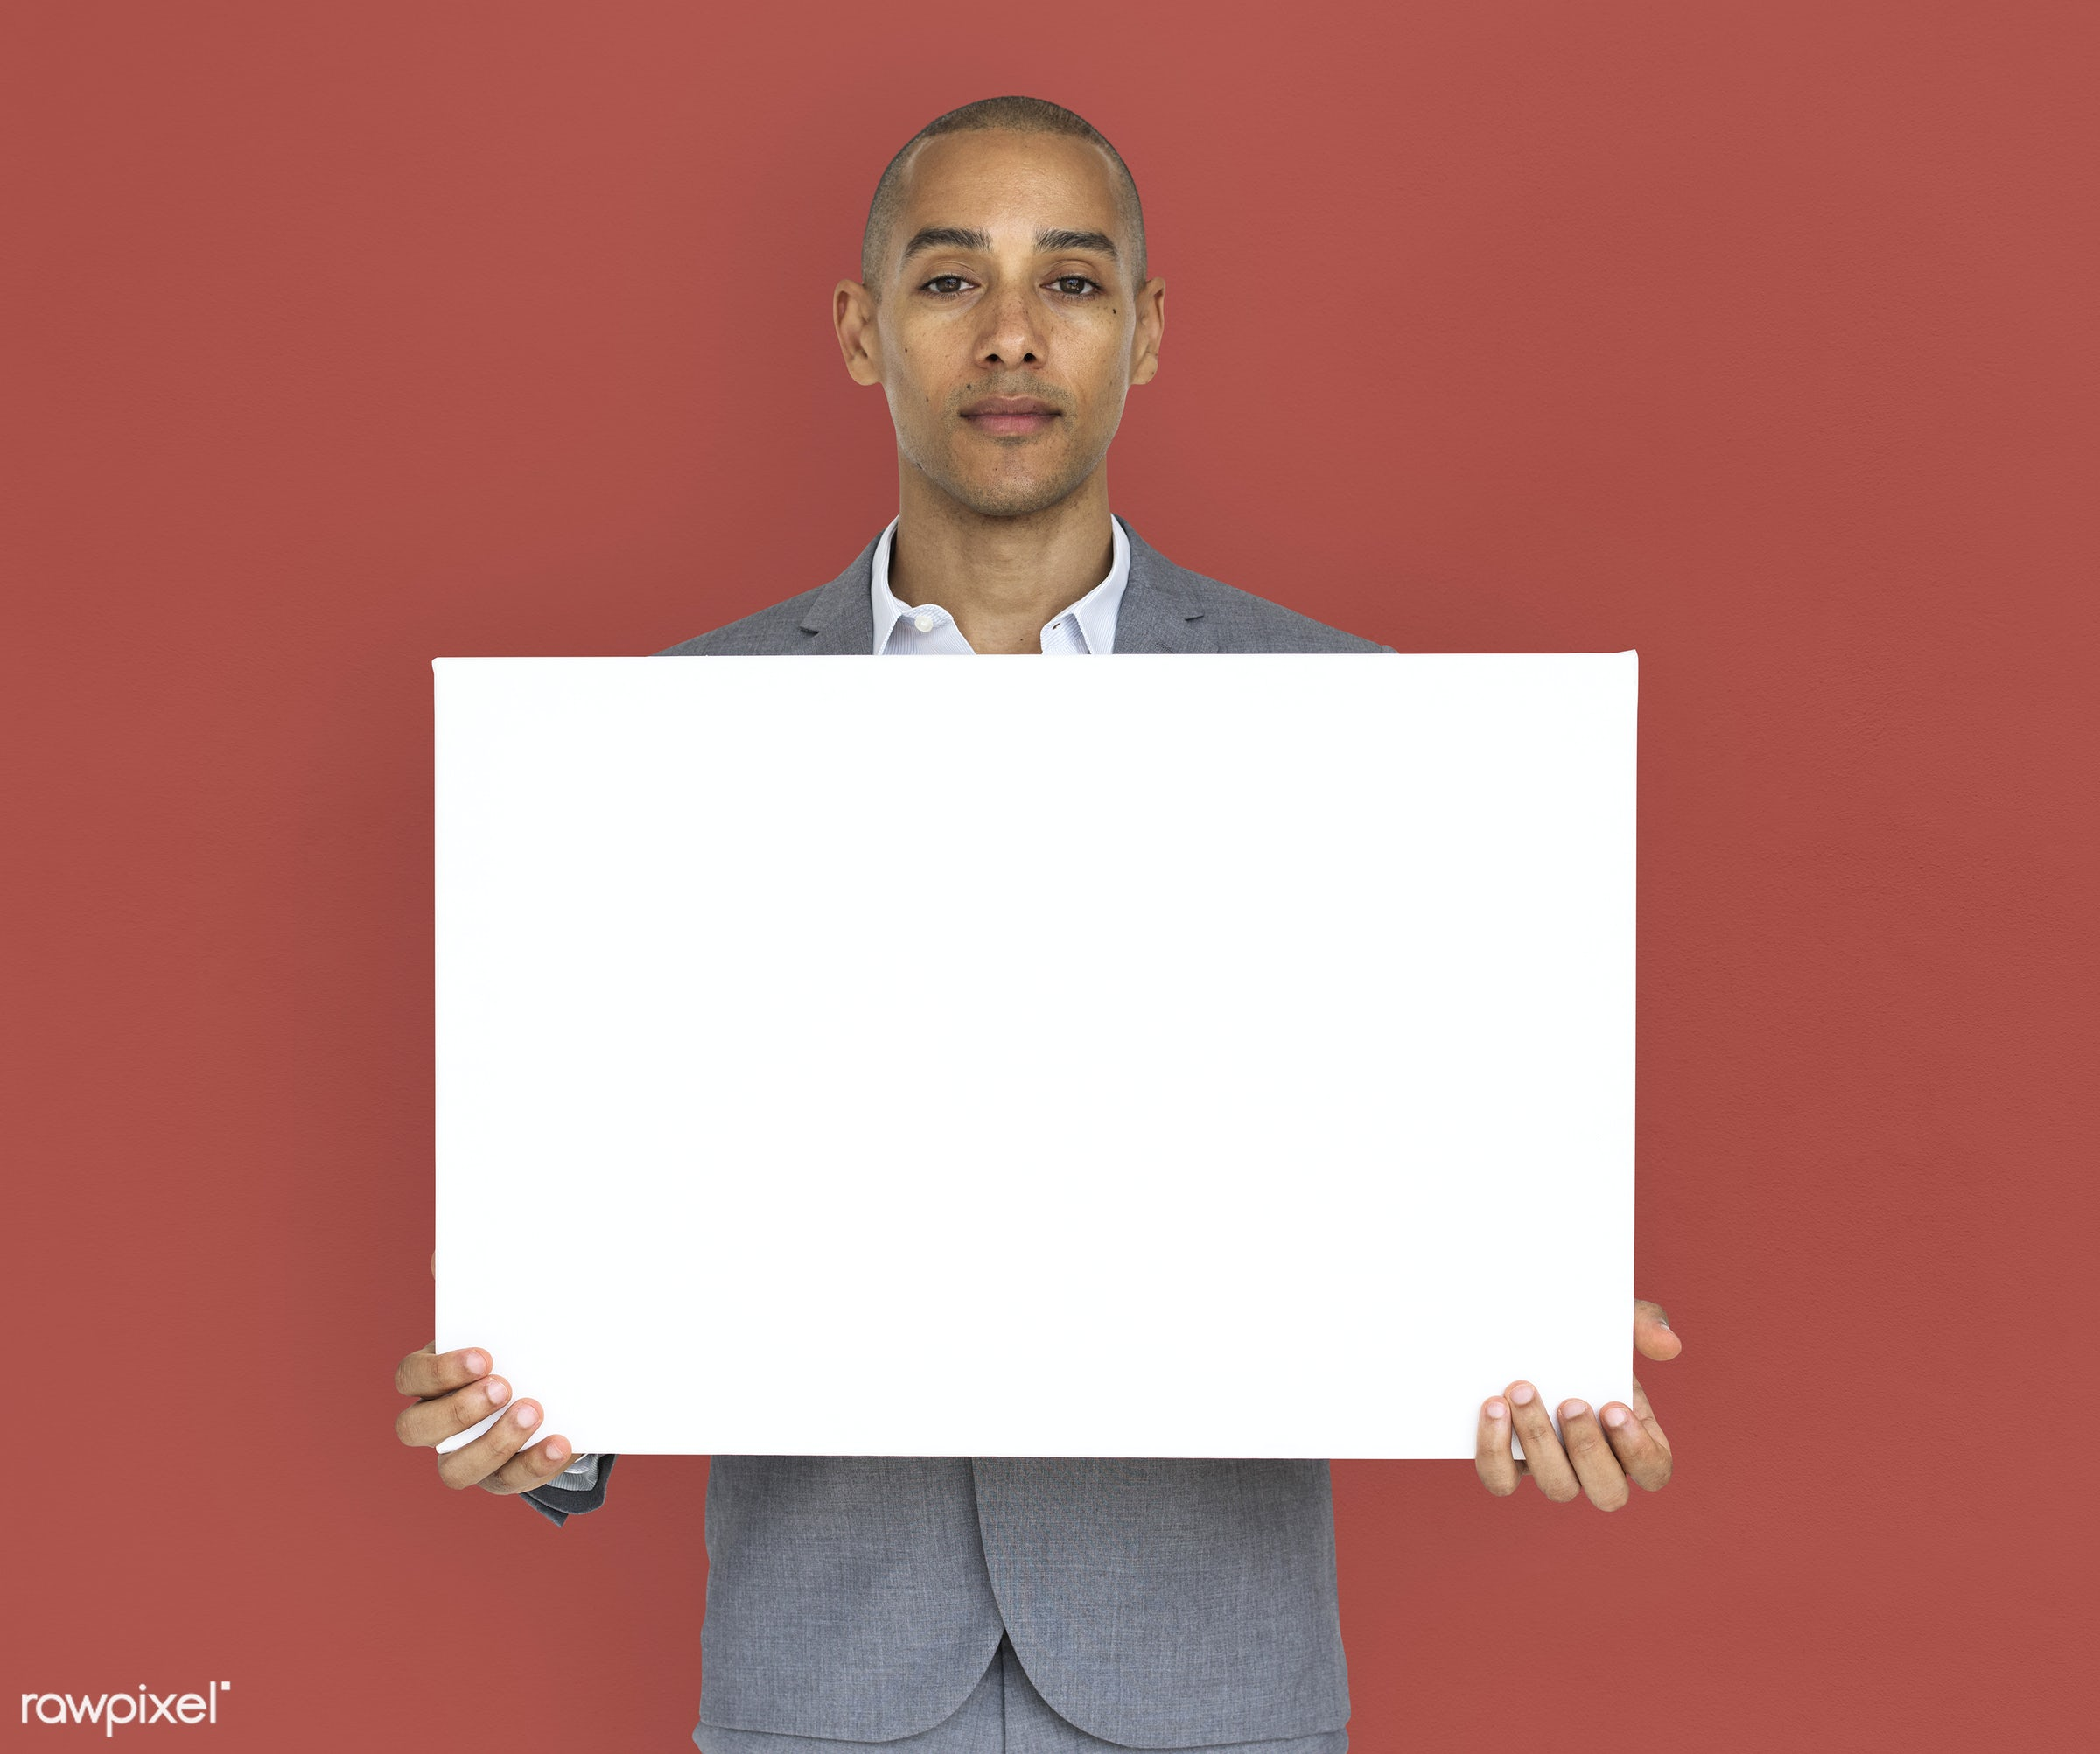 expression, studio, copy space, person, holding, people, business, placard, businessman, mixed race, man, banner, isolated,...